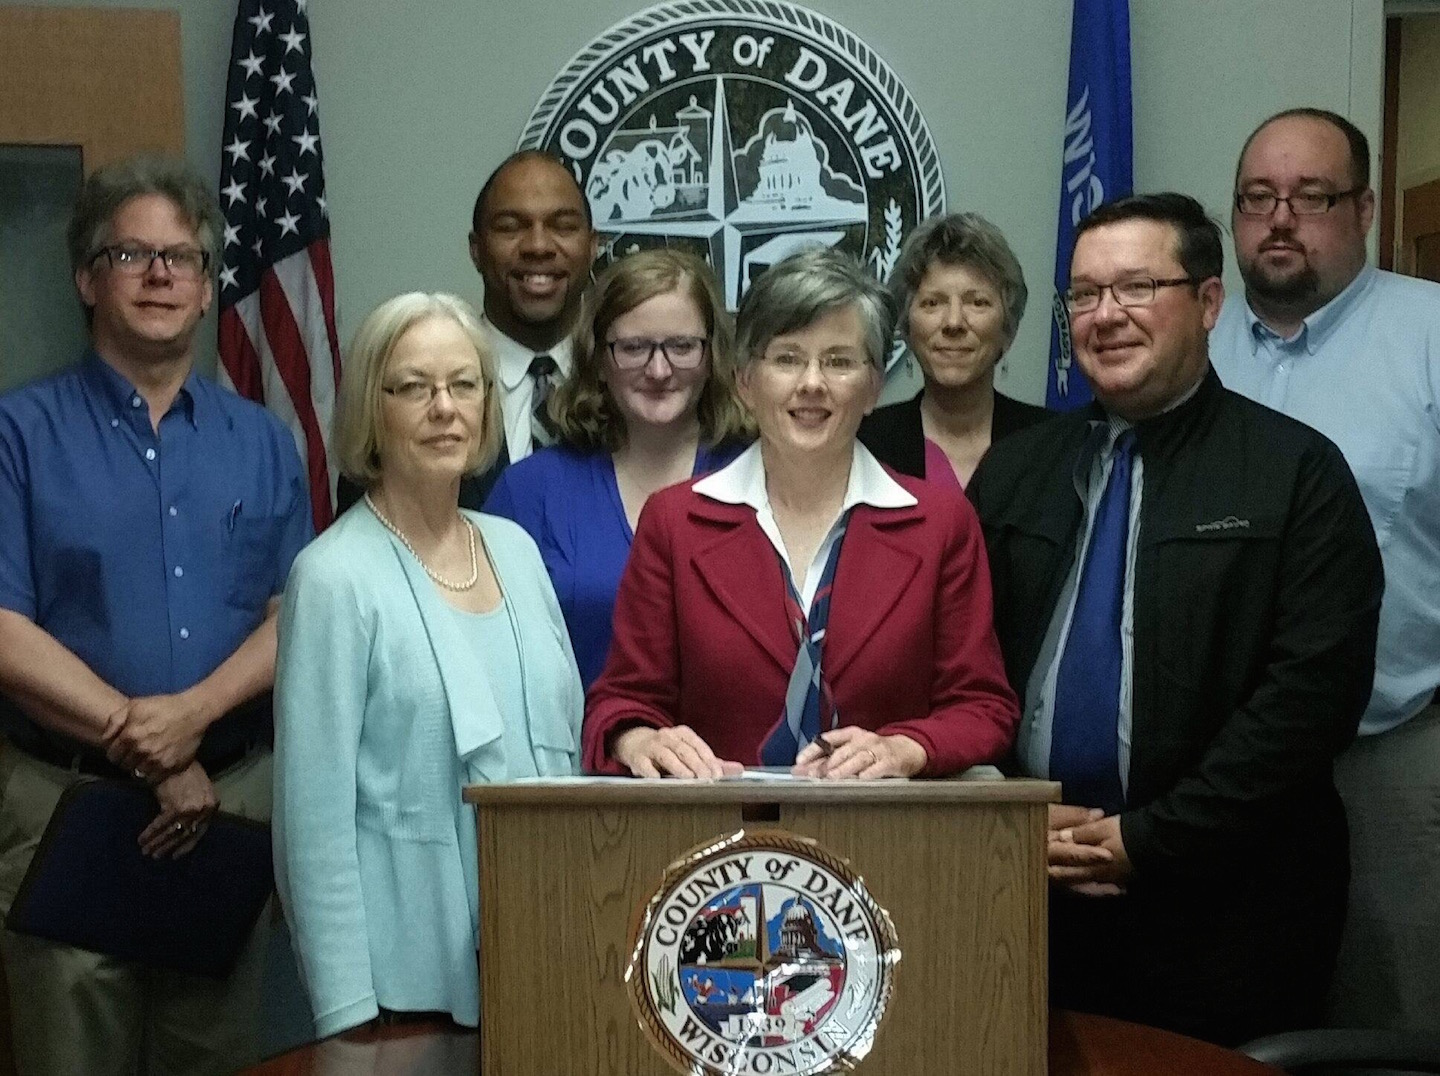 The Dane County Board's executive committee has launched a subcommittee to develop and propose an impartial process for drawing voting lines. LWVWI executive director Andrea Kaminski is happy to serve with Maurice Cheeks, Jenni Dye, WM Clausius, Linda Honold, Mark Hazelbaker and George Gillis.